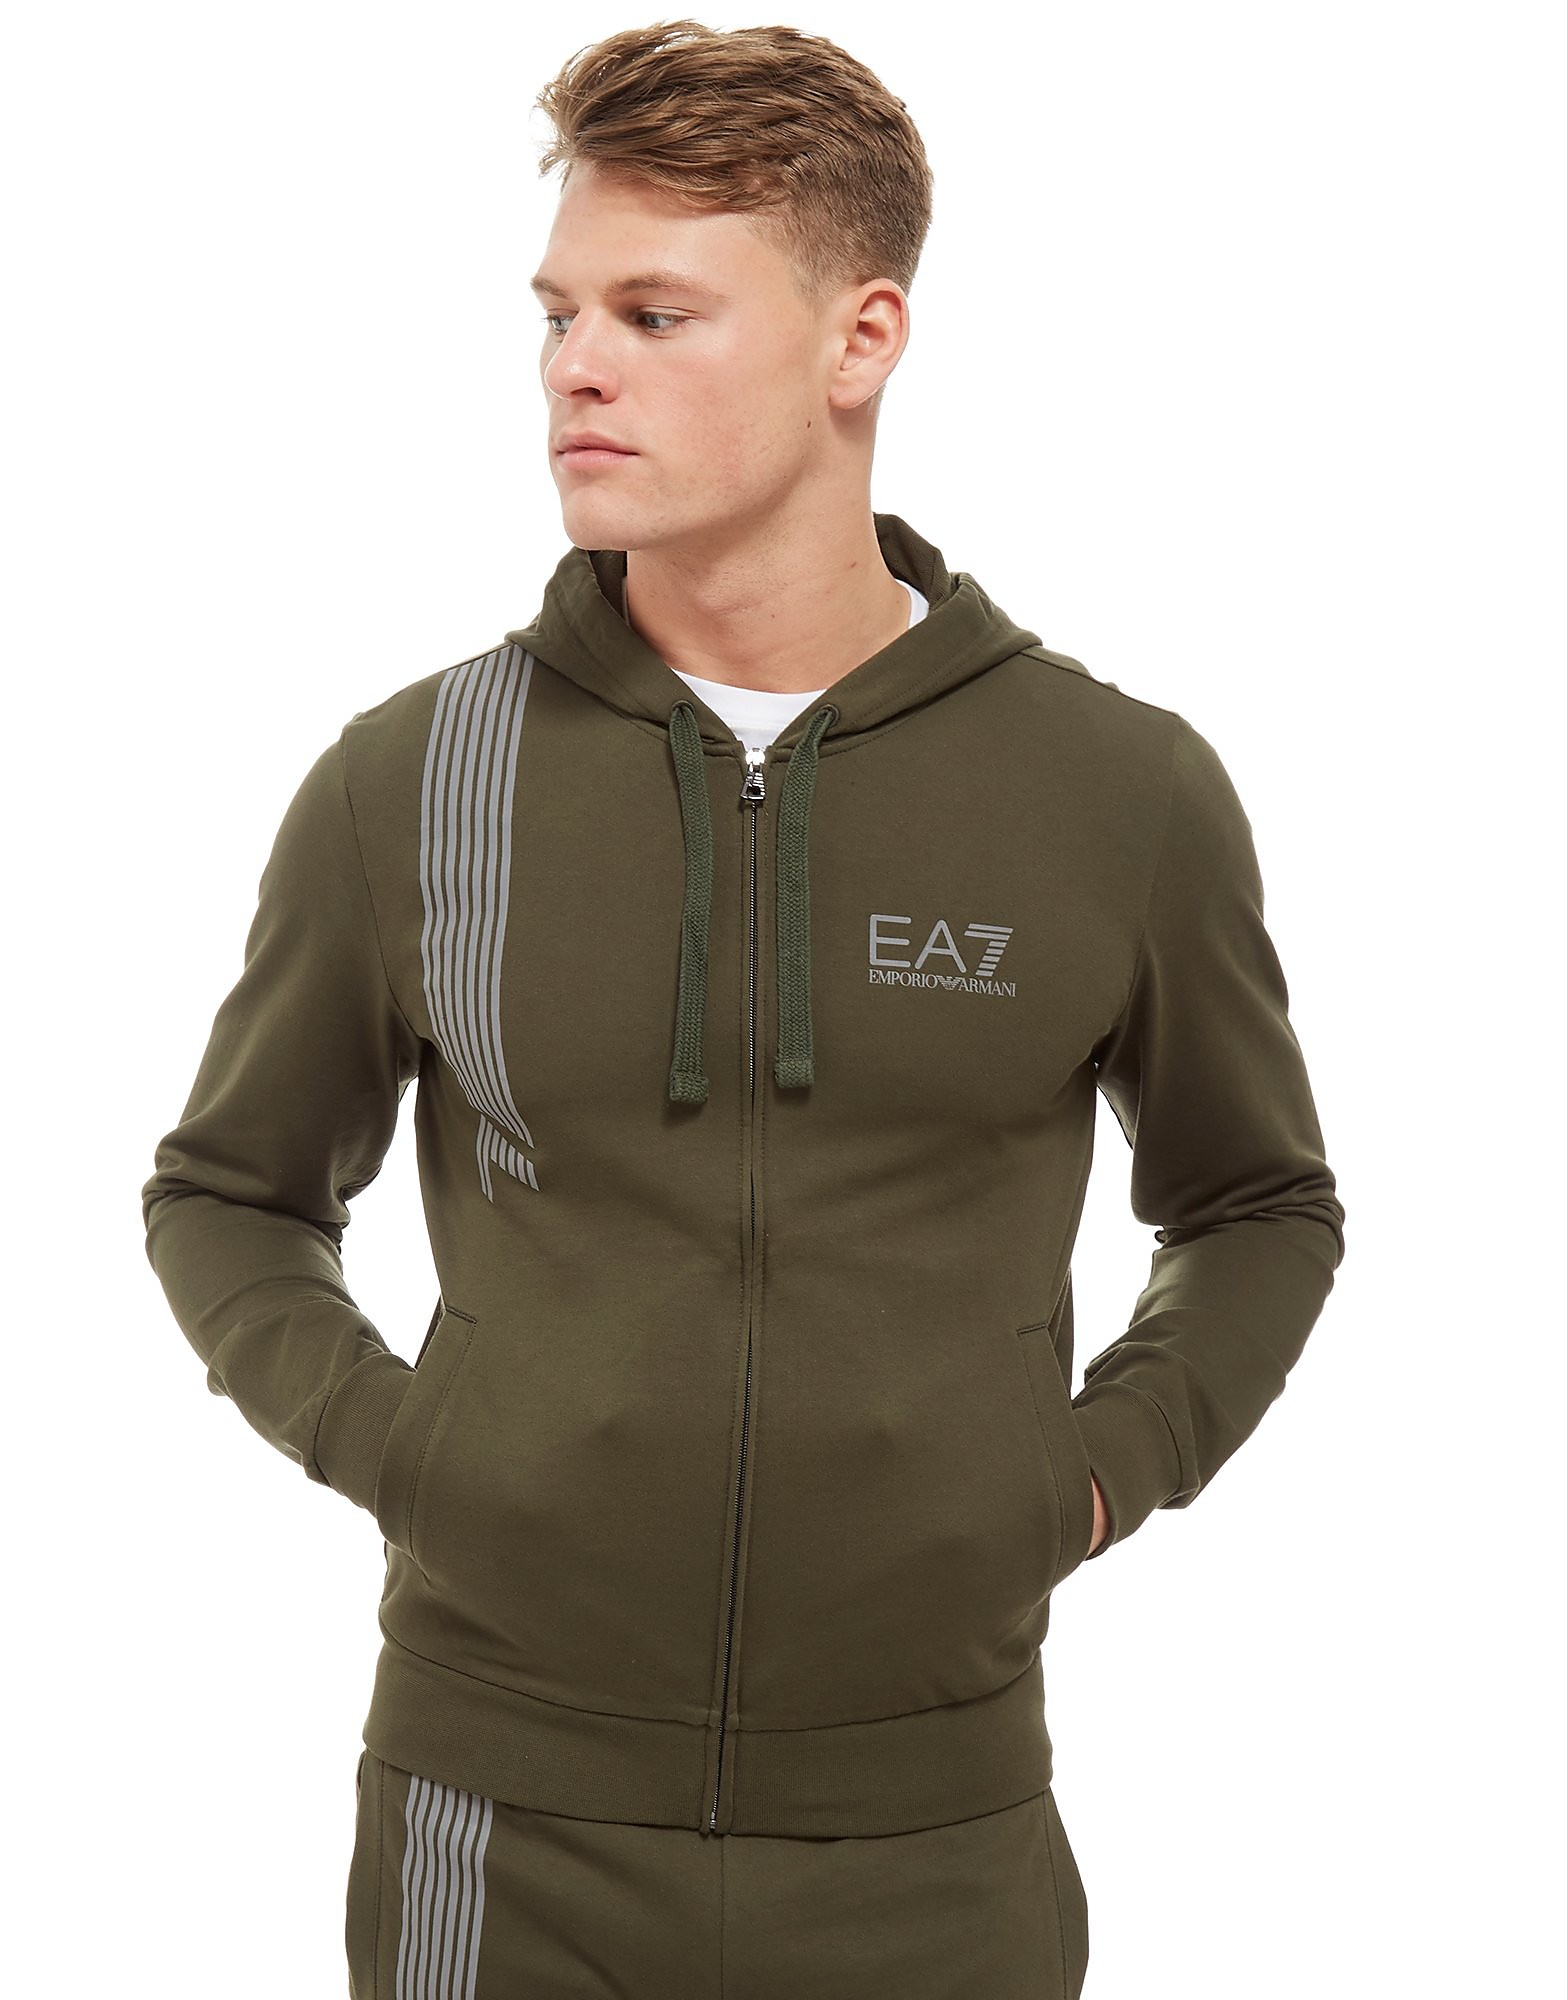 Emporio Armani EA7 7 Lines Zip Through Hoodie